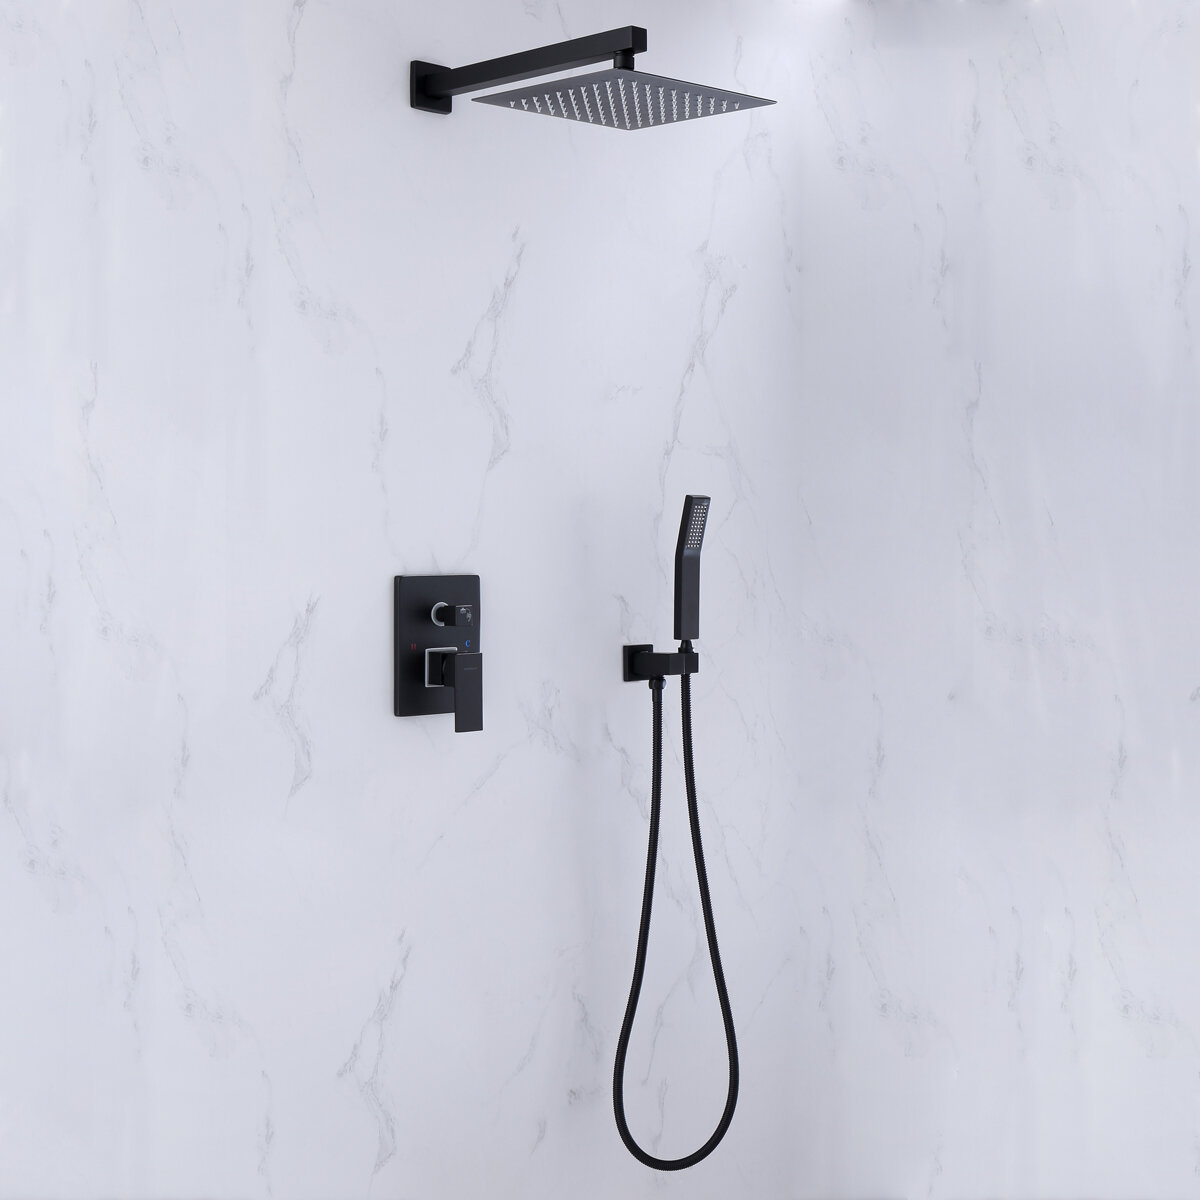 Watqen Temperature Control Complete Shower System With Rough In Valve Reviews Wayfair Ca